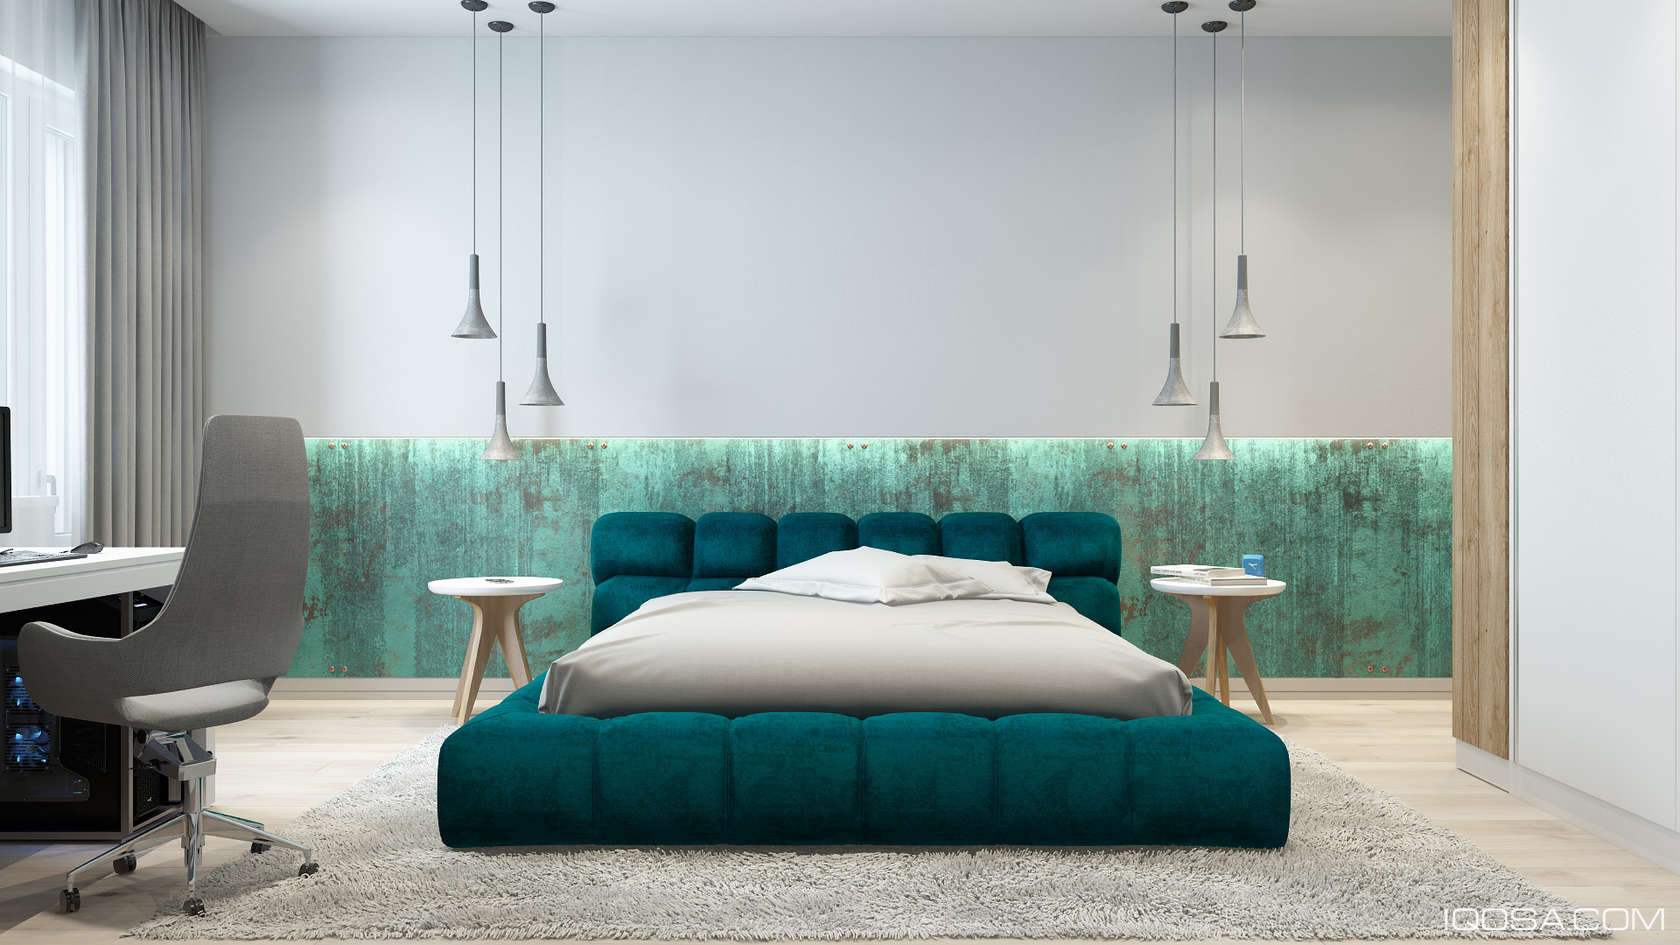 Luxury Small Studio Apartment Design Combined Modern And